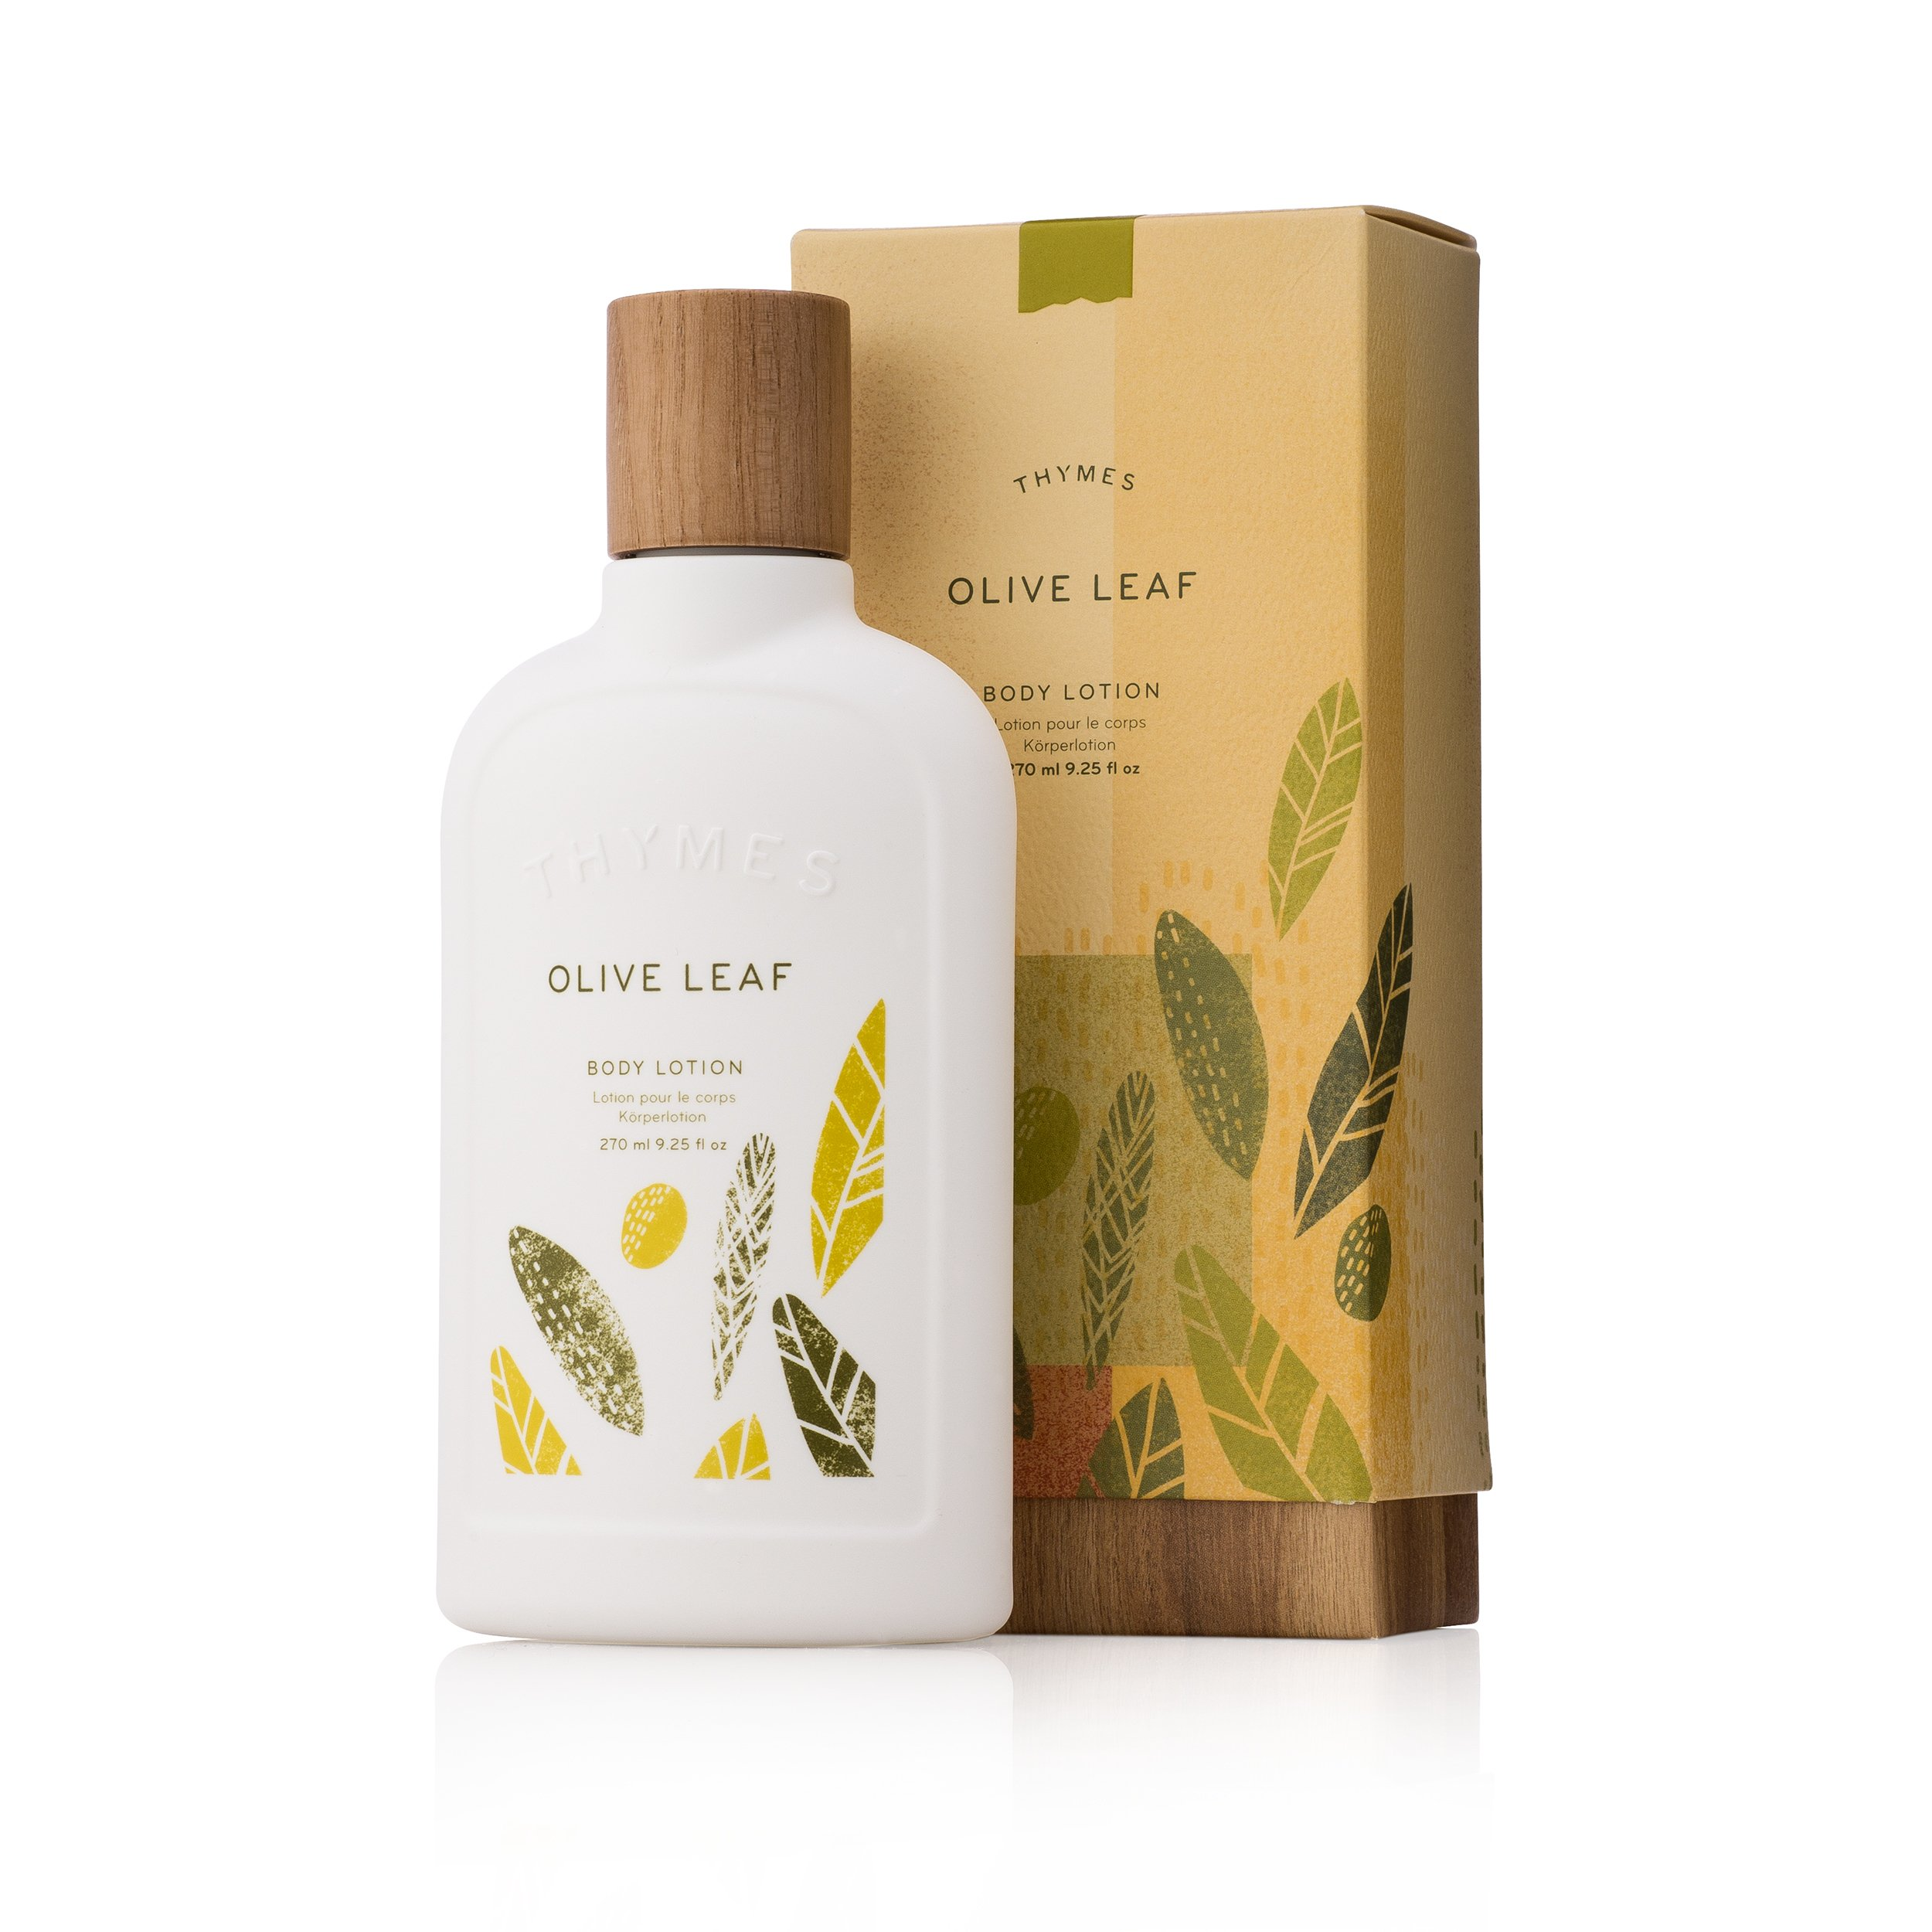 Thymes - Olive Leaf Body Lotion - With Moisturizing Shea Butter, Vitamin E and Olive Oil - 9.25 oz by Thymes